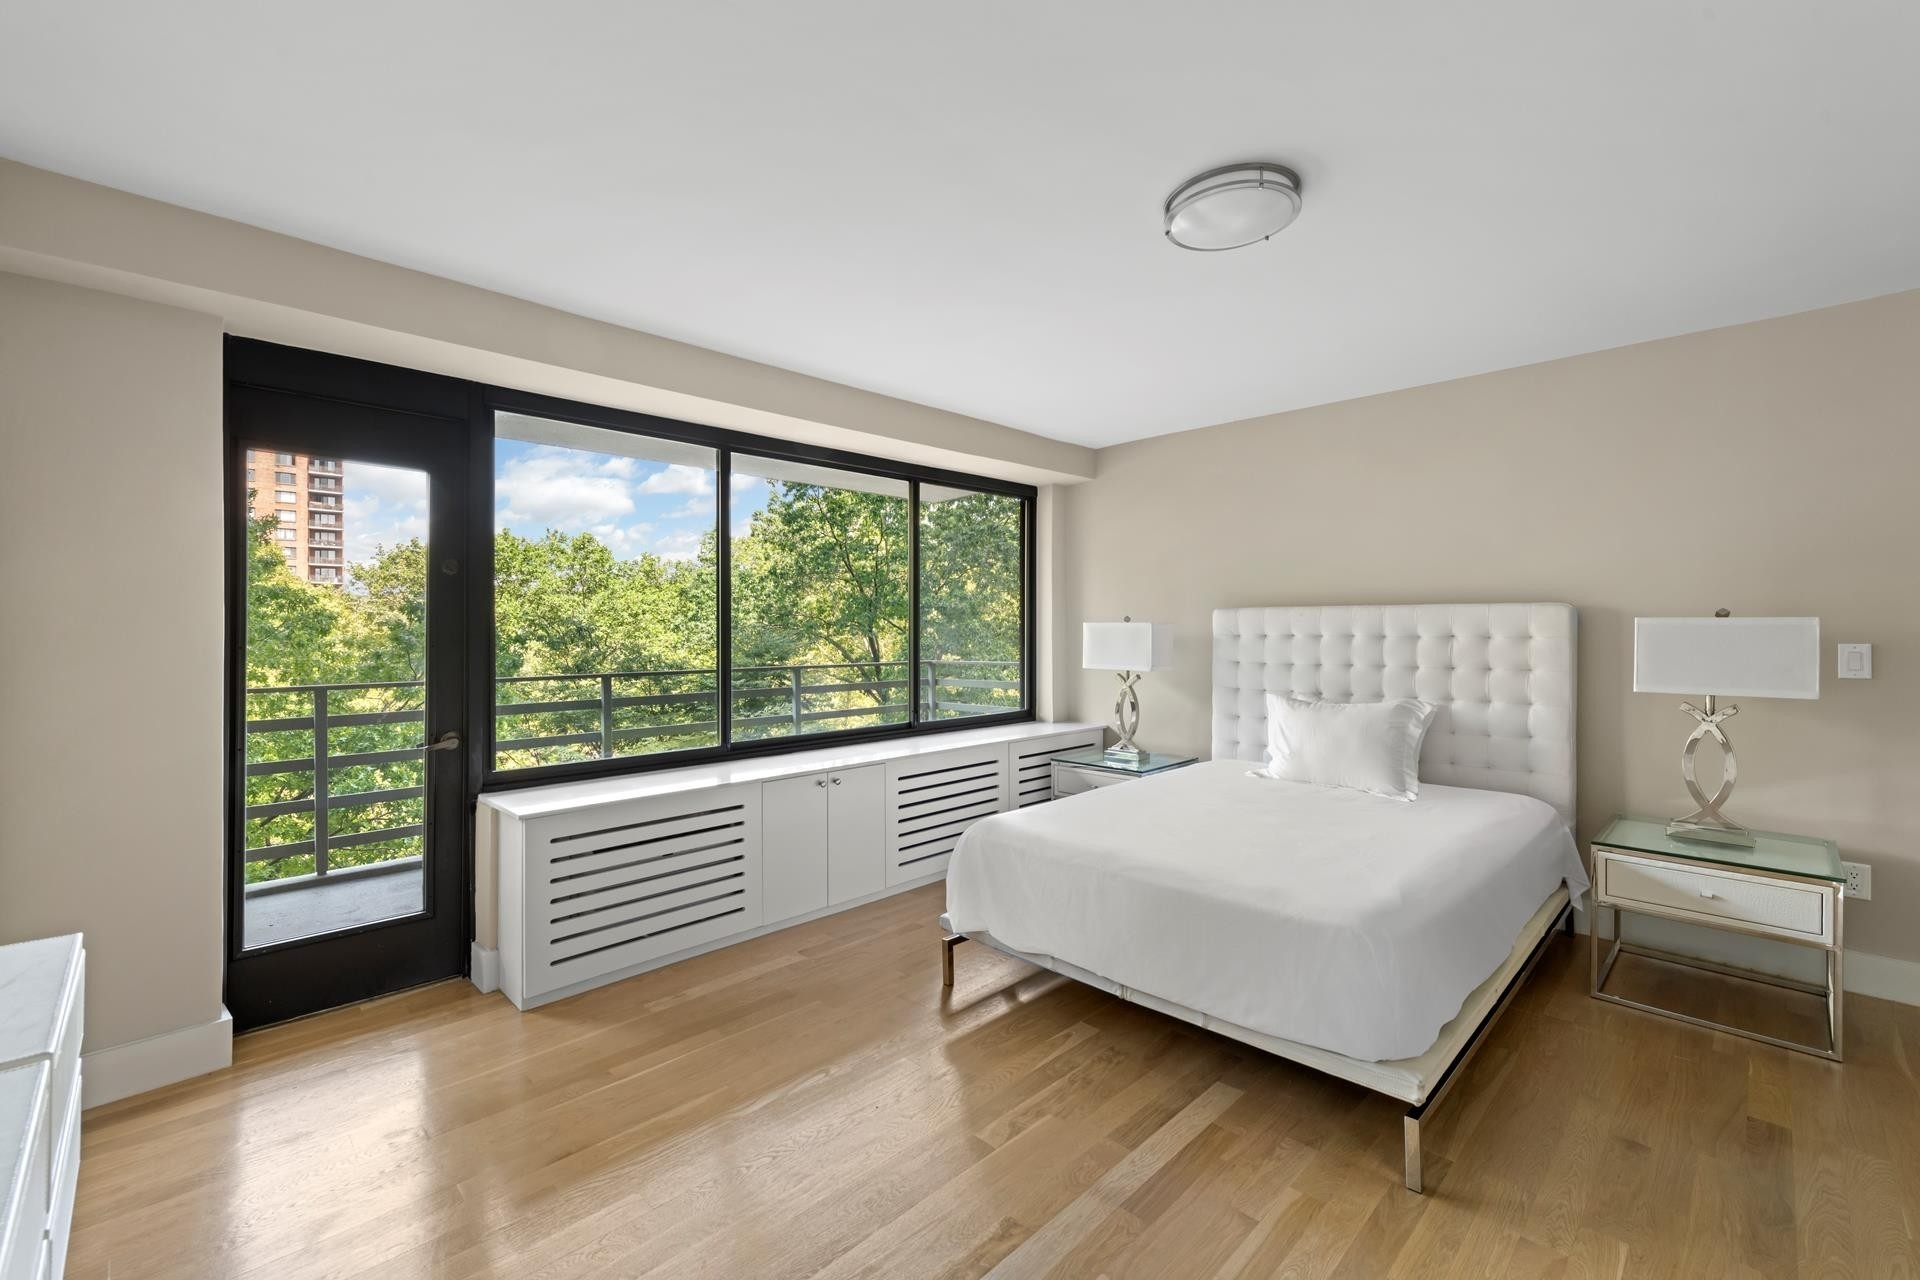 10. Condominiums for Sale at Vaux, The (Park Wes, 372 CENTRAL PARK W, 5BC Manhattan Valley, New York, NY 10025